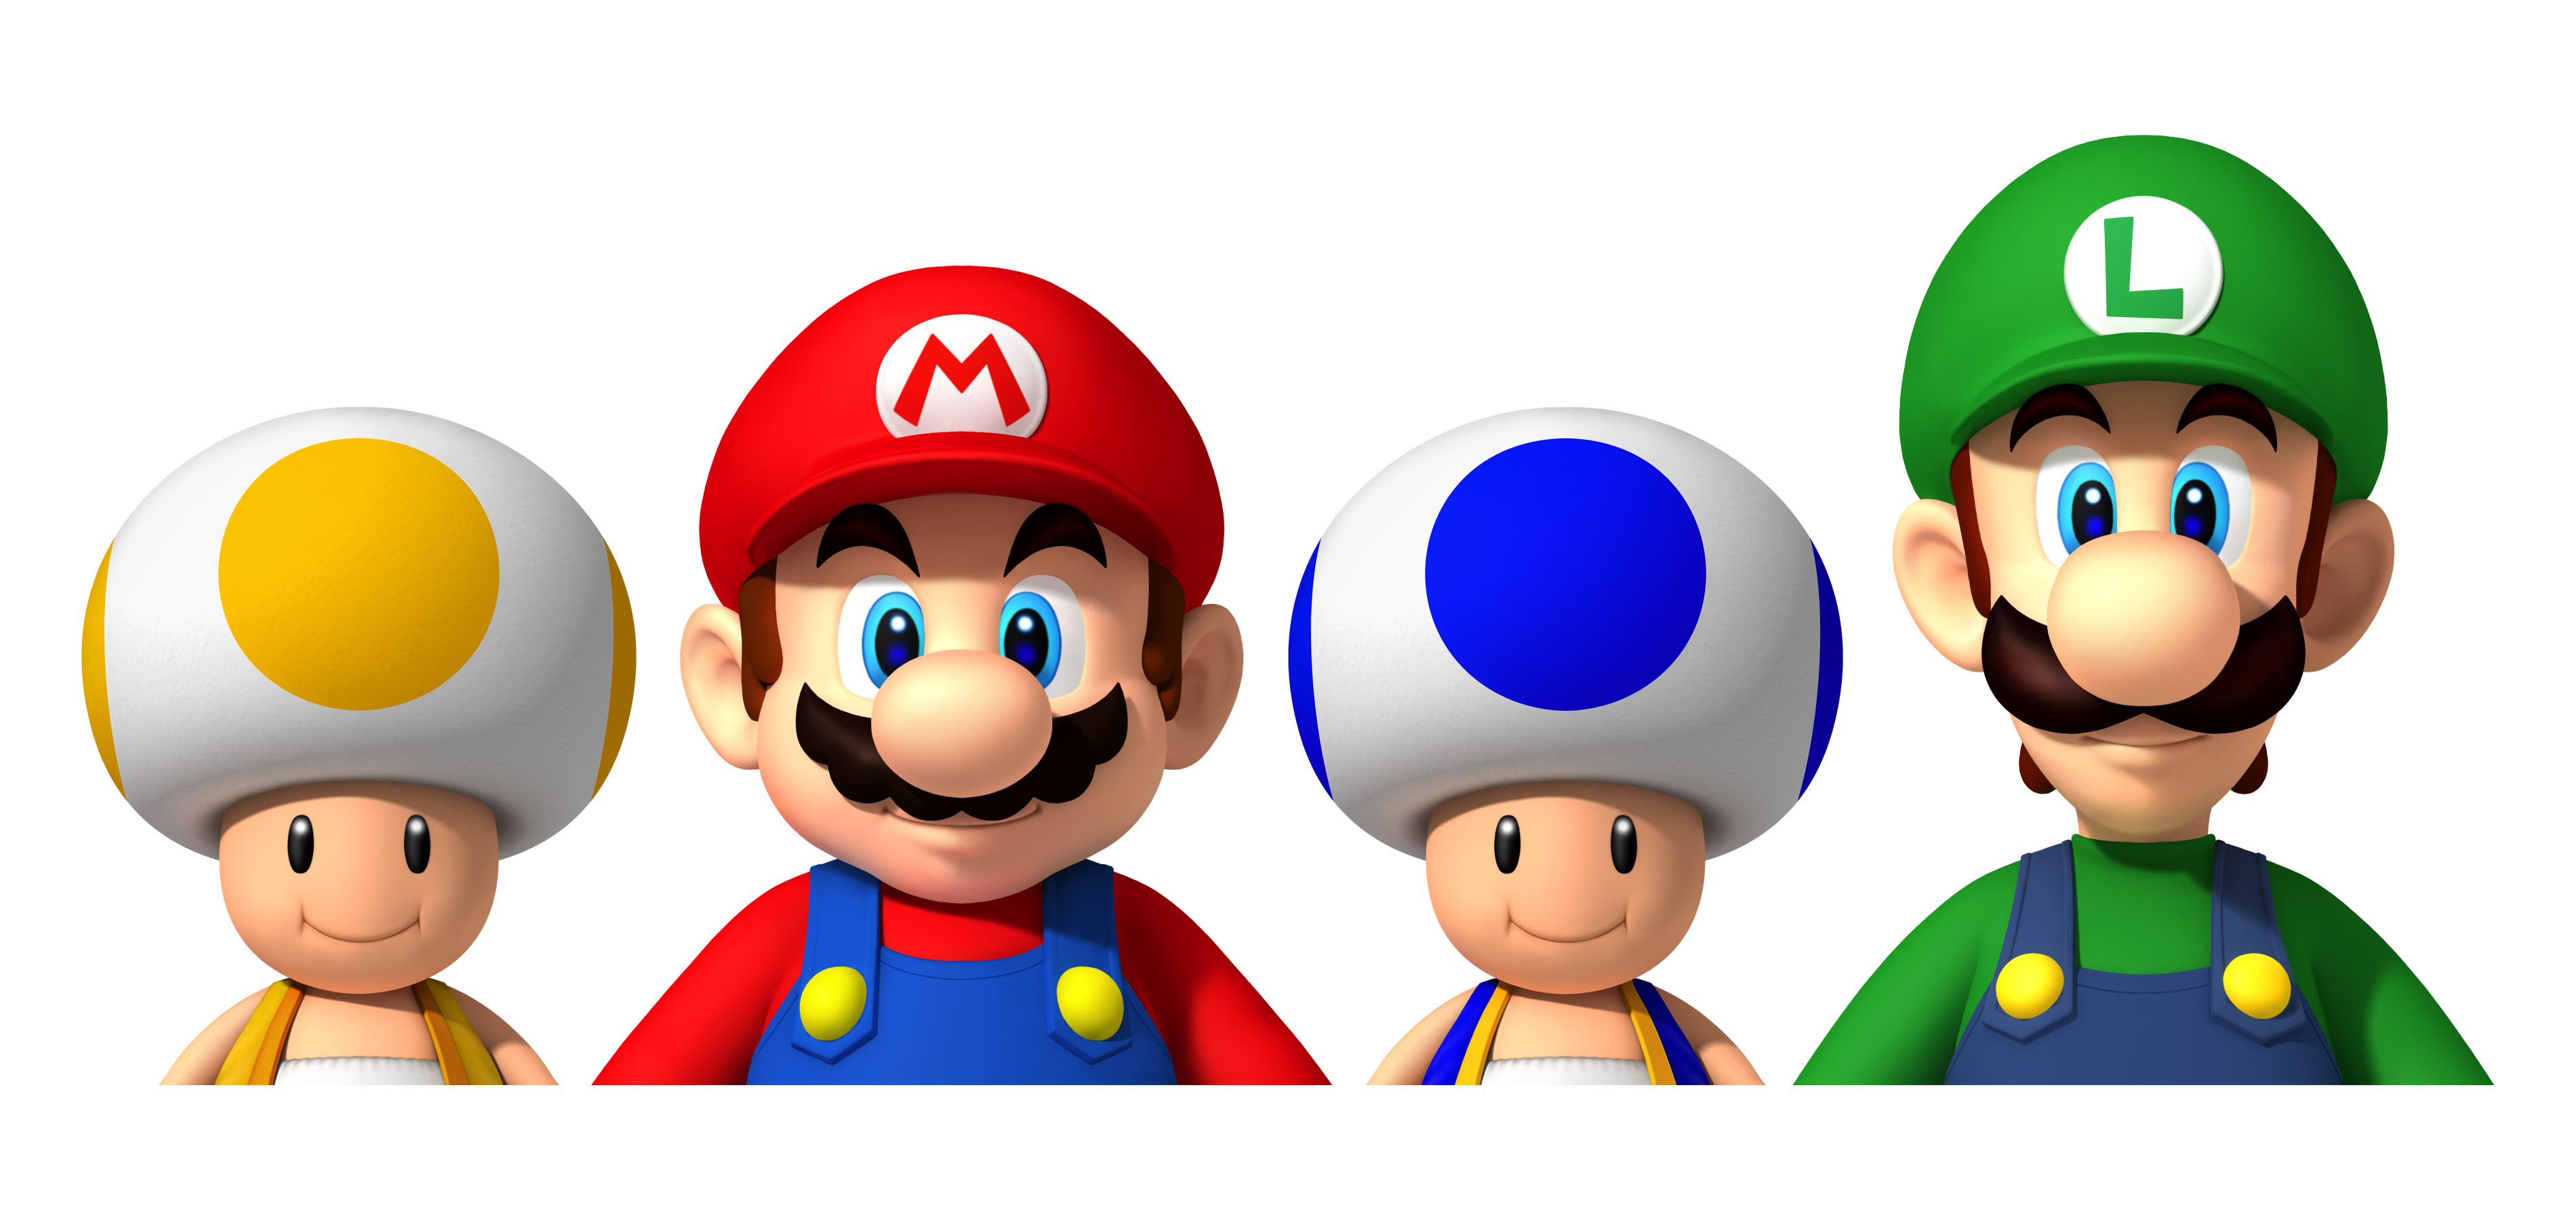 Super mario wallpapers high quality download free super mario wallpapers altavistaventures Gallery